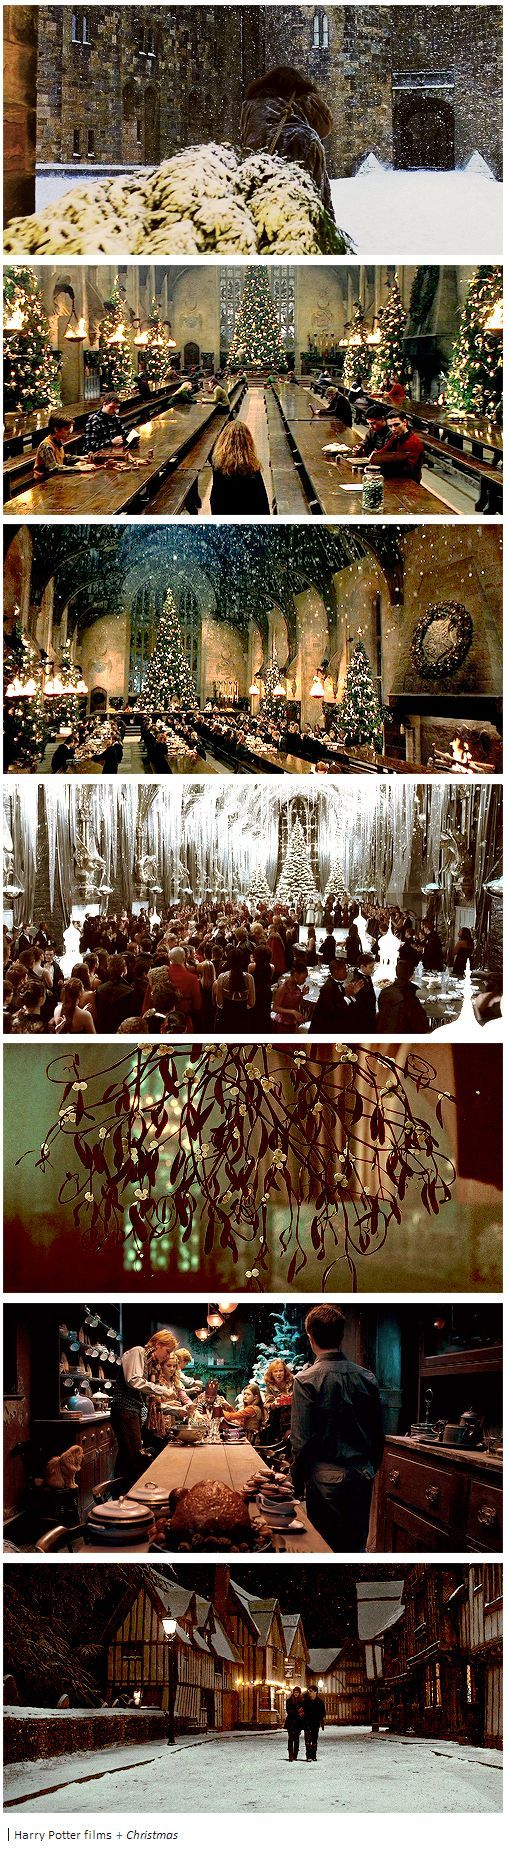 Christmas and Harry Potter.: